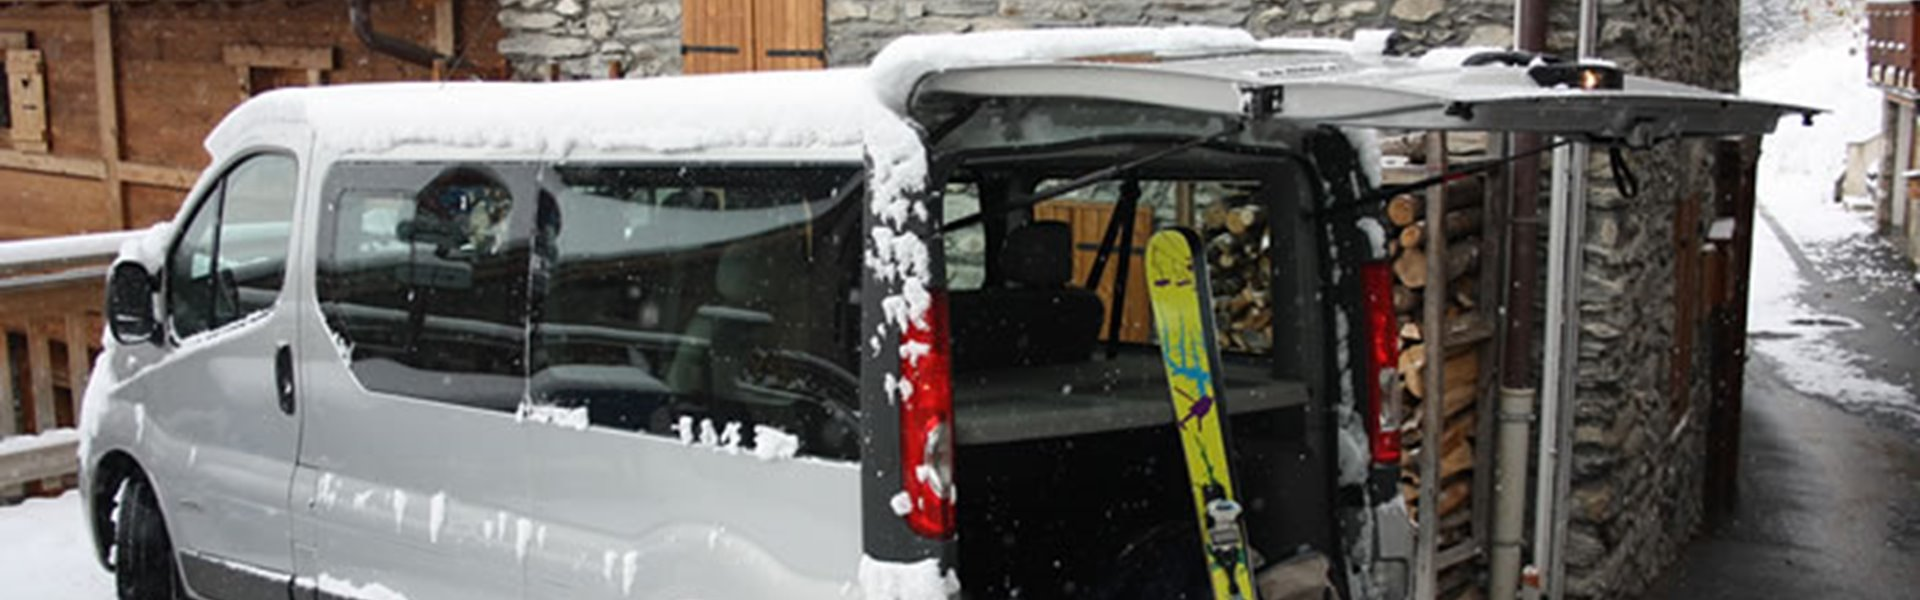 Airport Transfer To Sestriere